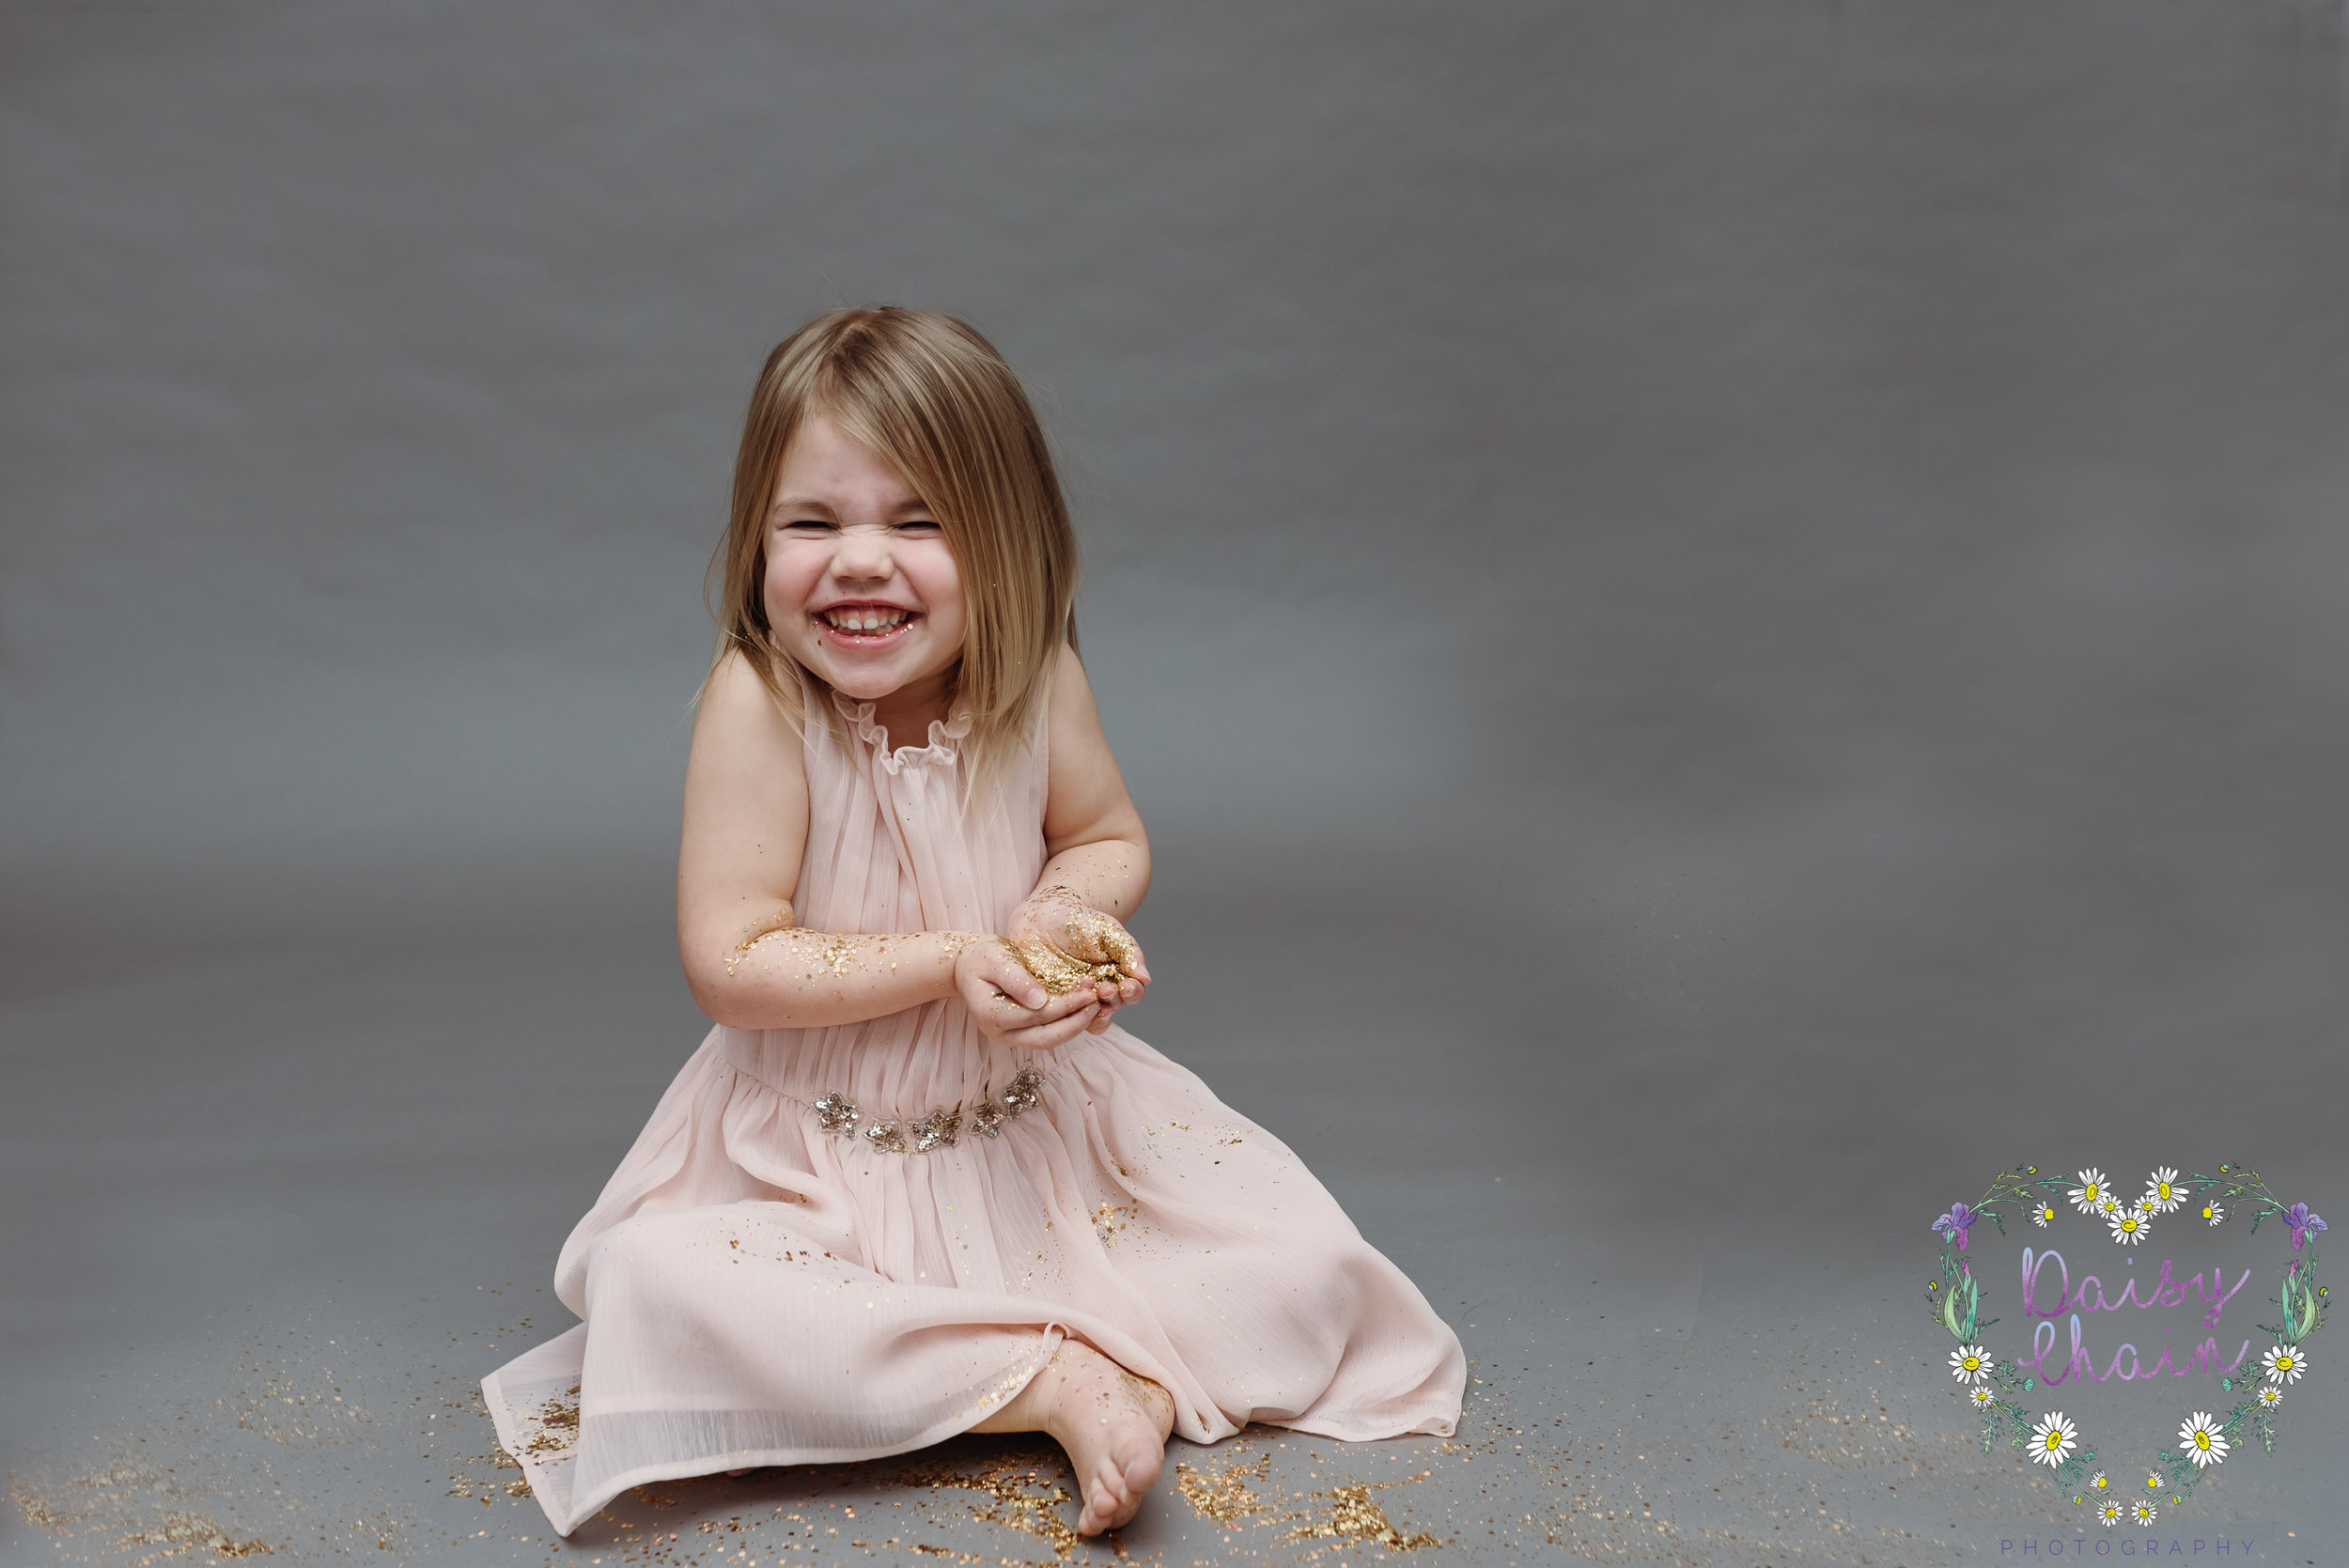 Clitheroe family photographer - glitter session